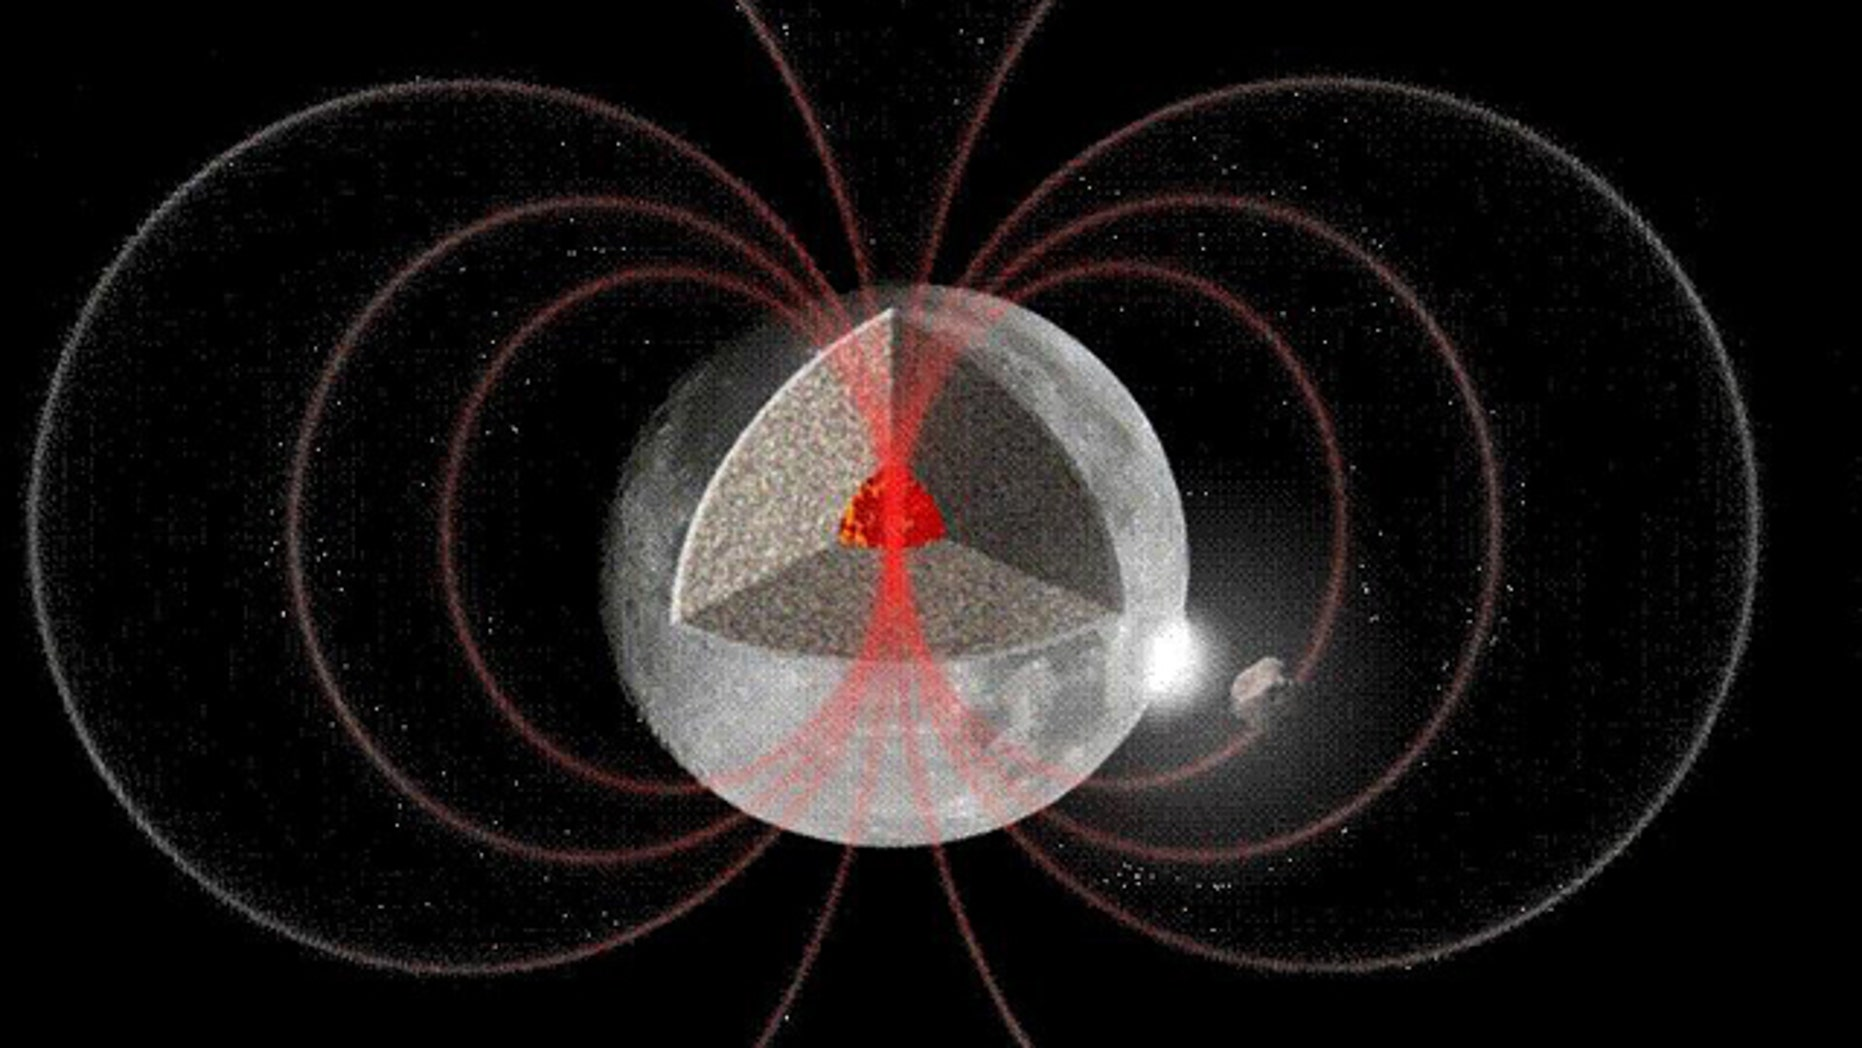 This illustration shows one suggested mechanism for creating an ancient magnetic field on the moon. In this scenario, impacting space rocks on the moon would create instability in the moon's core that could lead to a dynamo that creates a magnetic field.